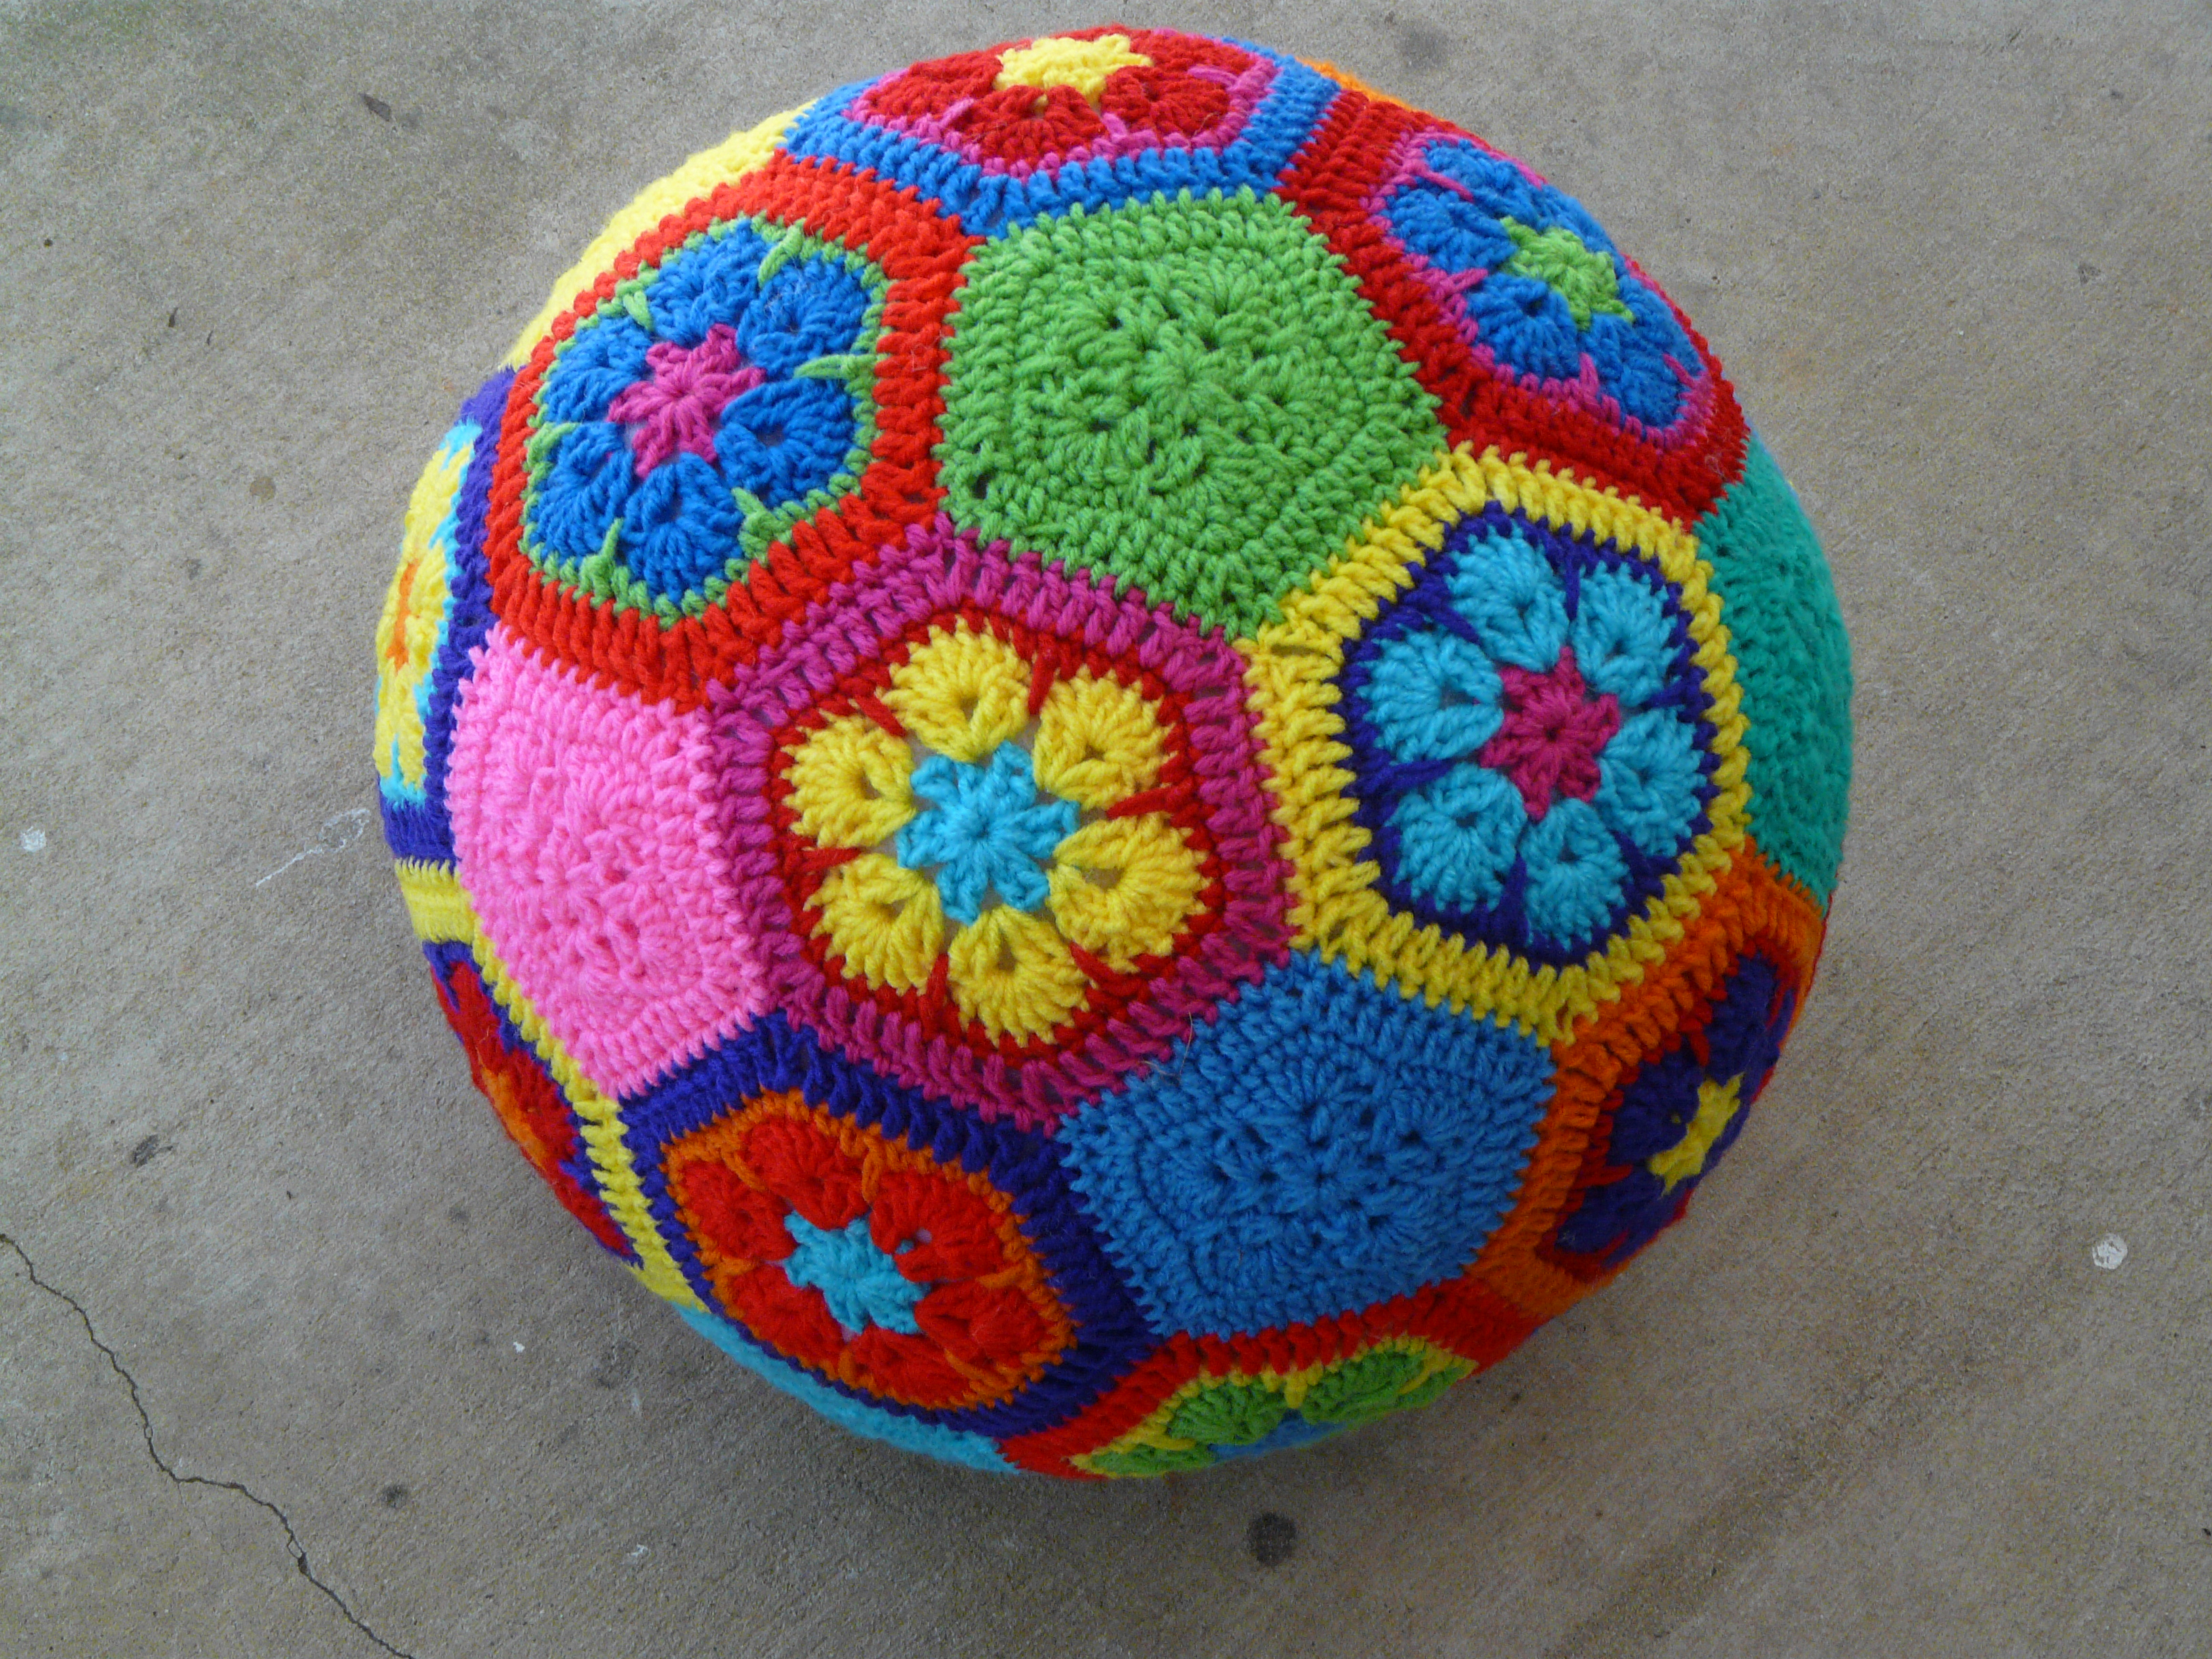 How to make an African Flower soccer ball - Crochetbug